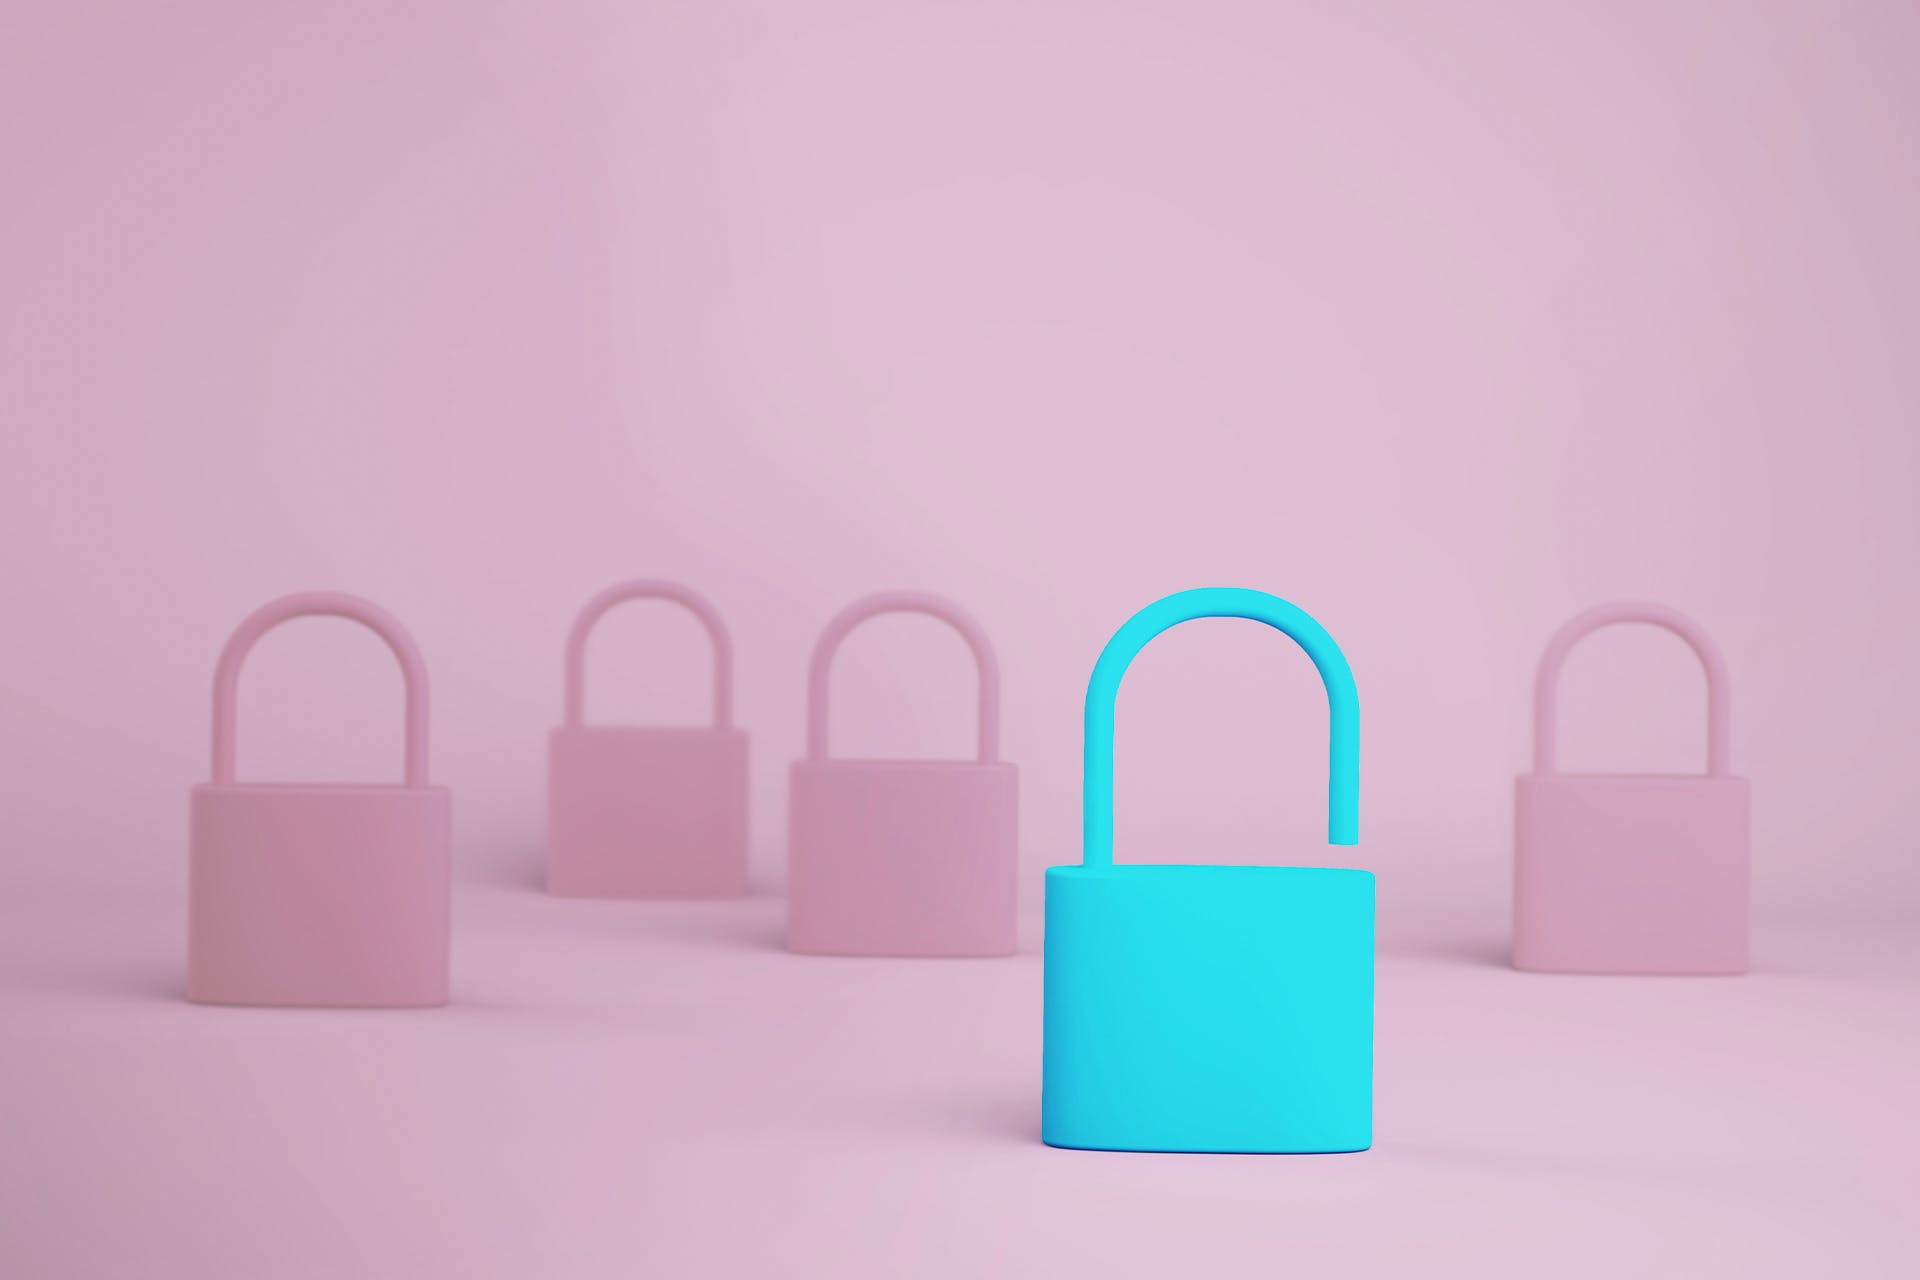 A teal padlock that is unlocked among a bunch of pink padlocks that are closed.